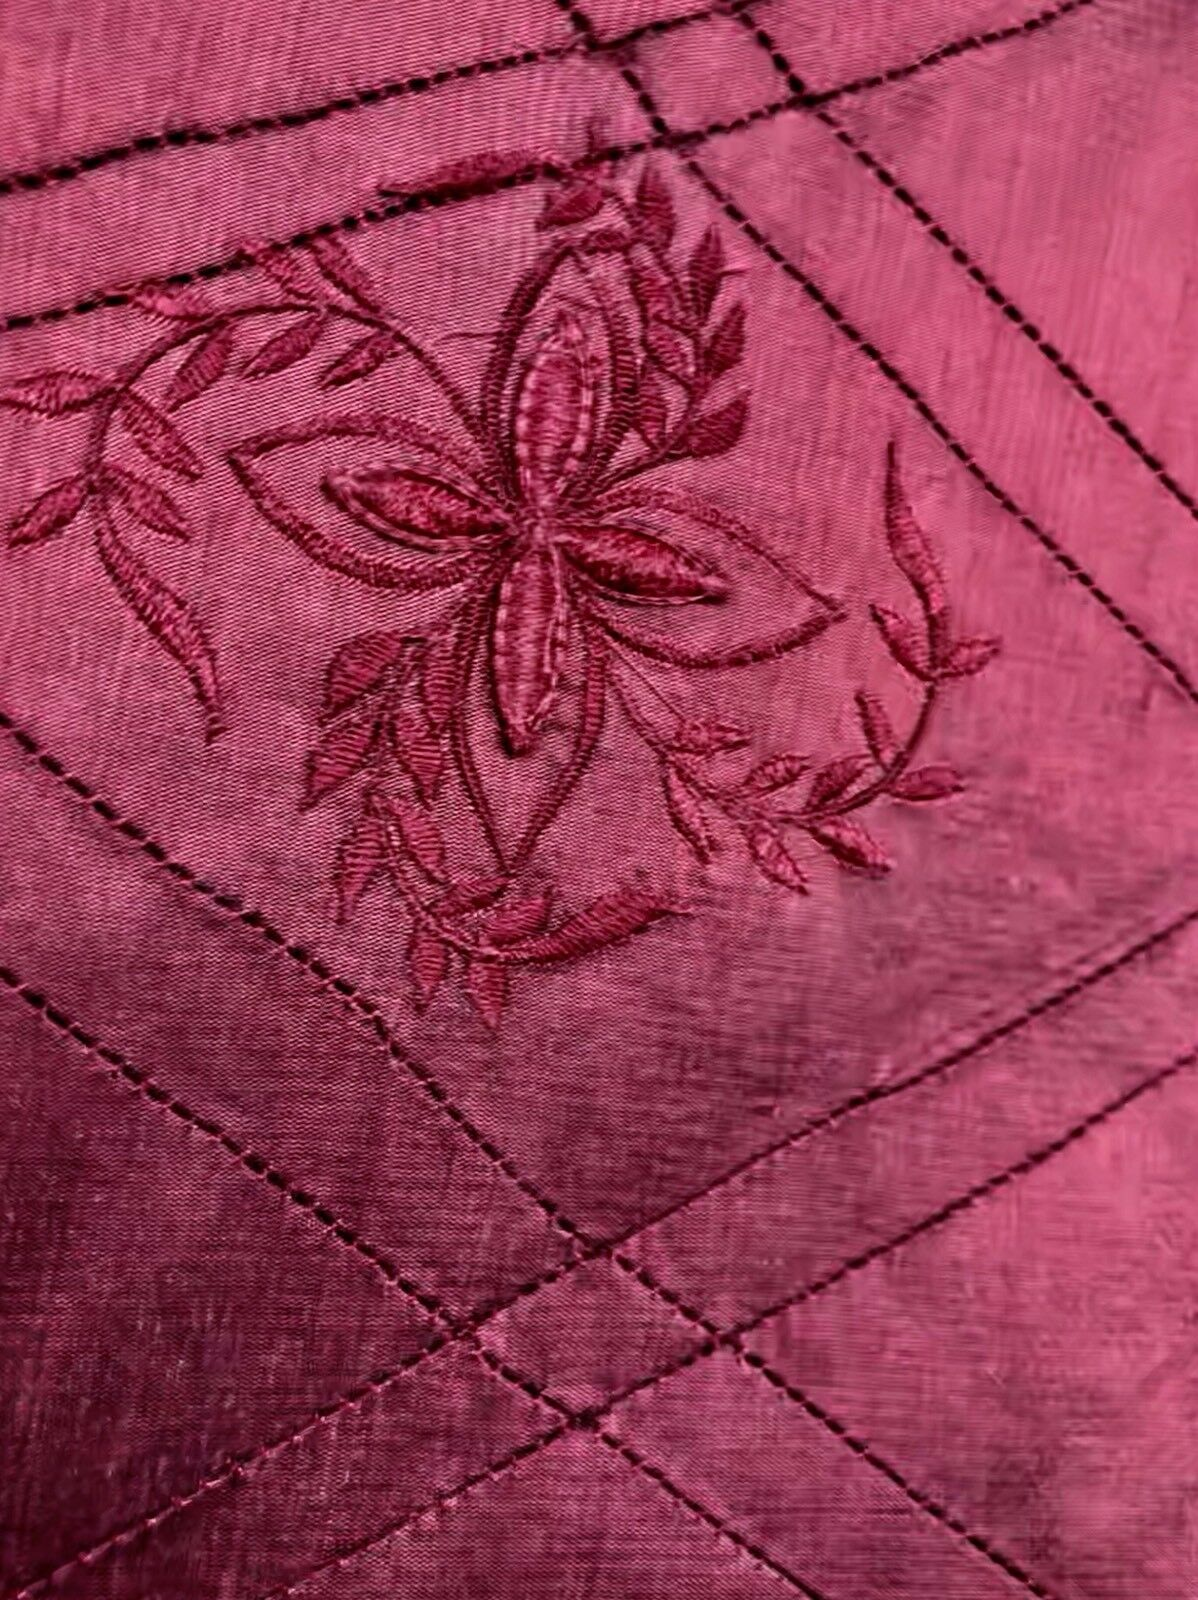 SWATCH 100% Silk Washed Dupioni Embroidered Floral Quilted Motif Fabric - Red